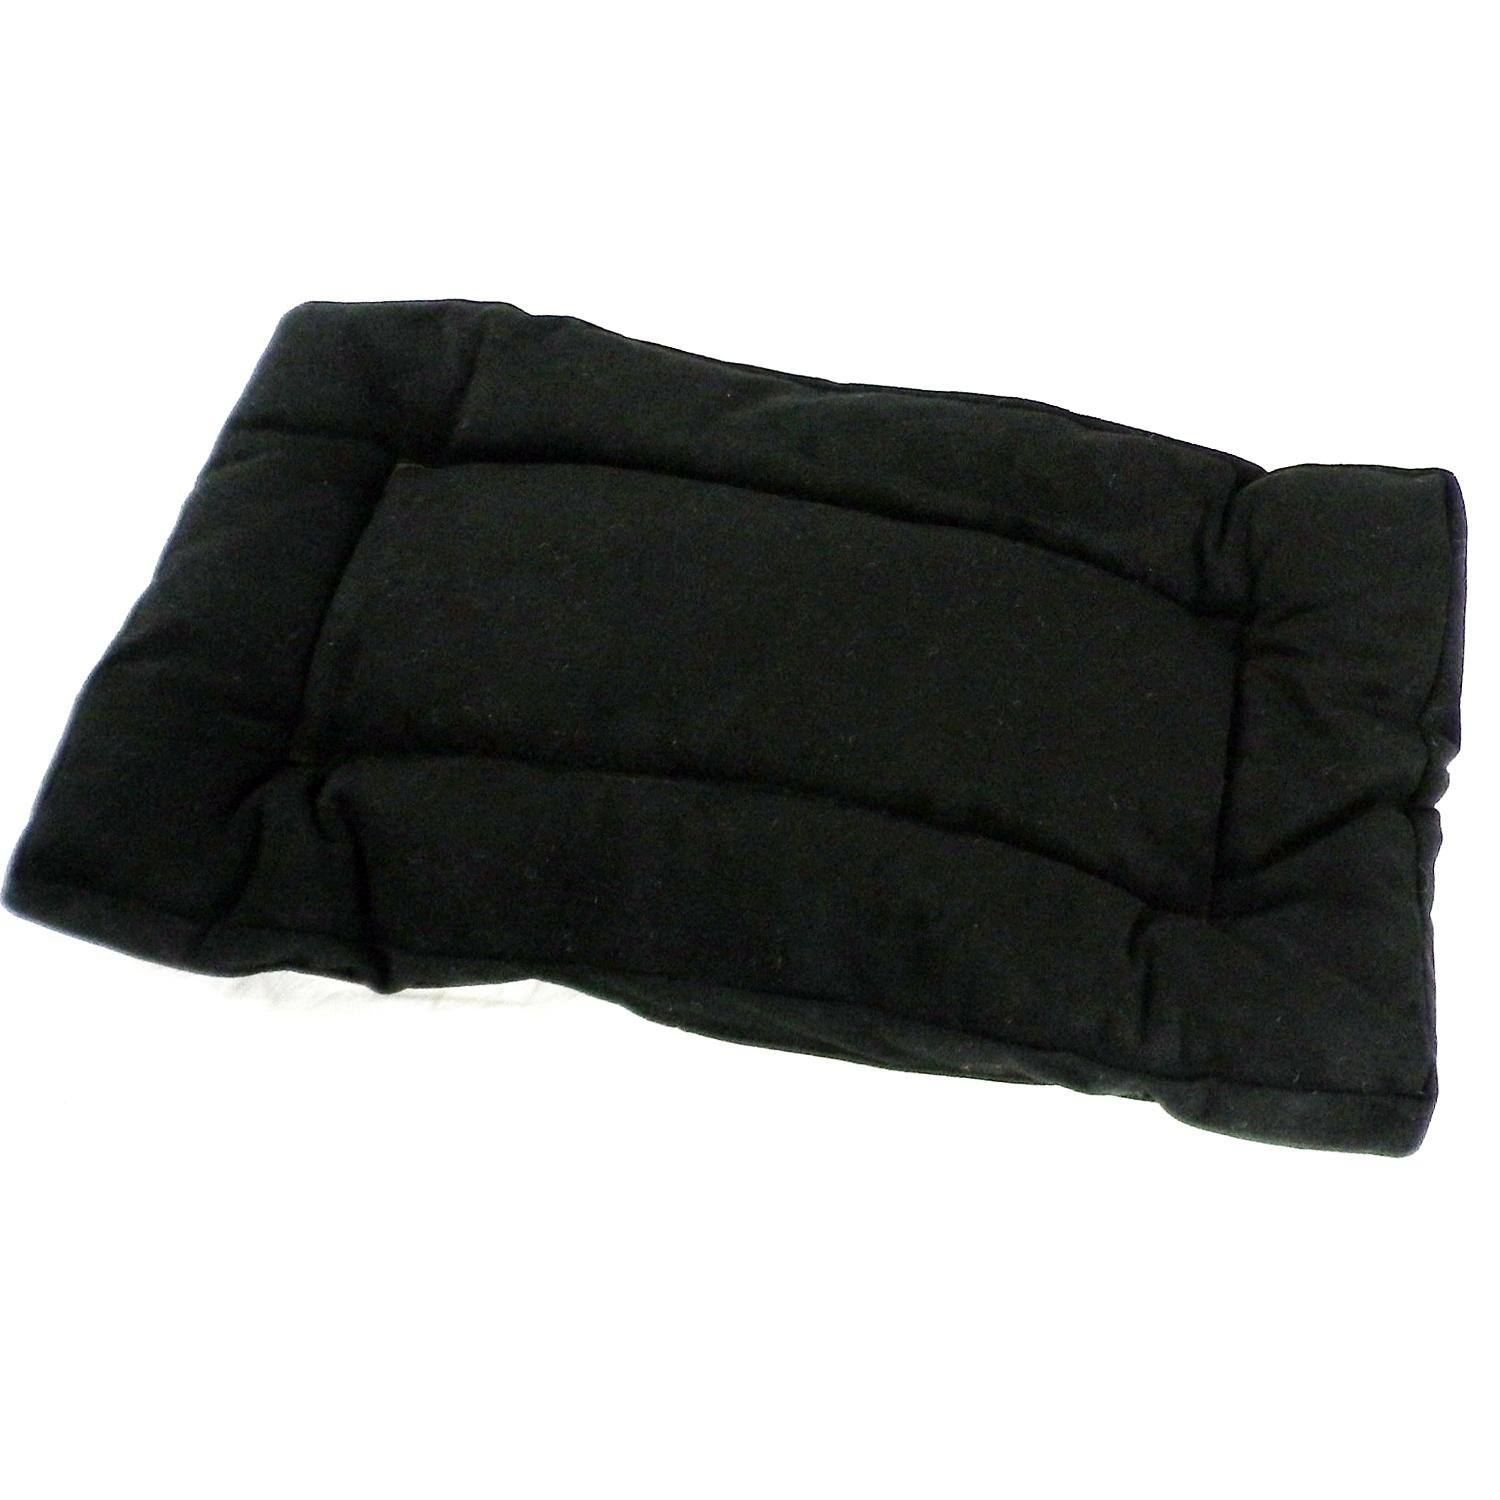 Snoozer Outlast Black Dog Crate Pad